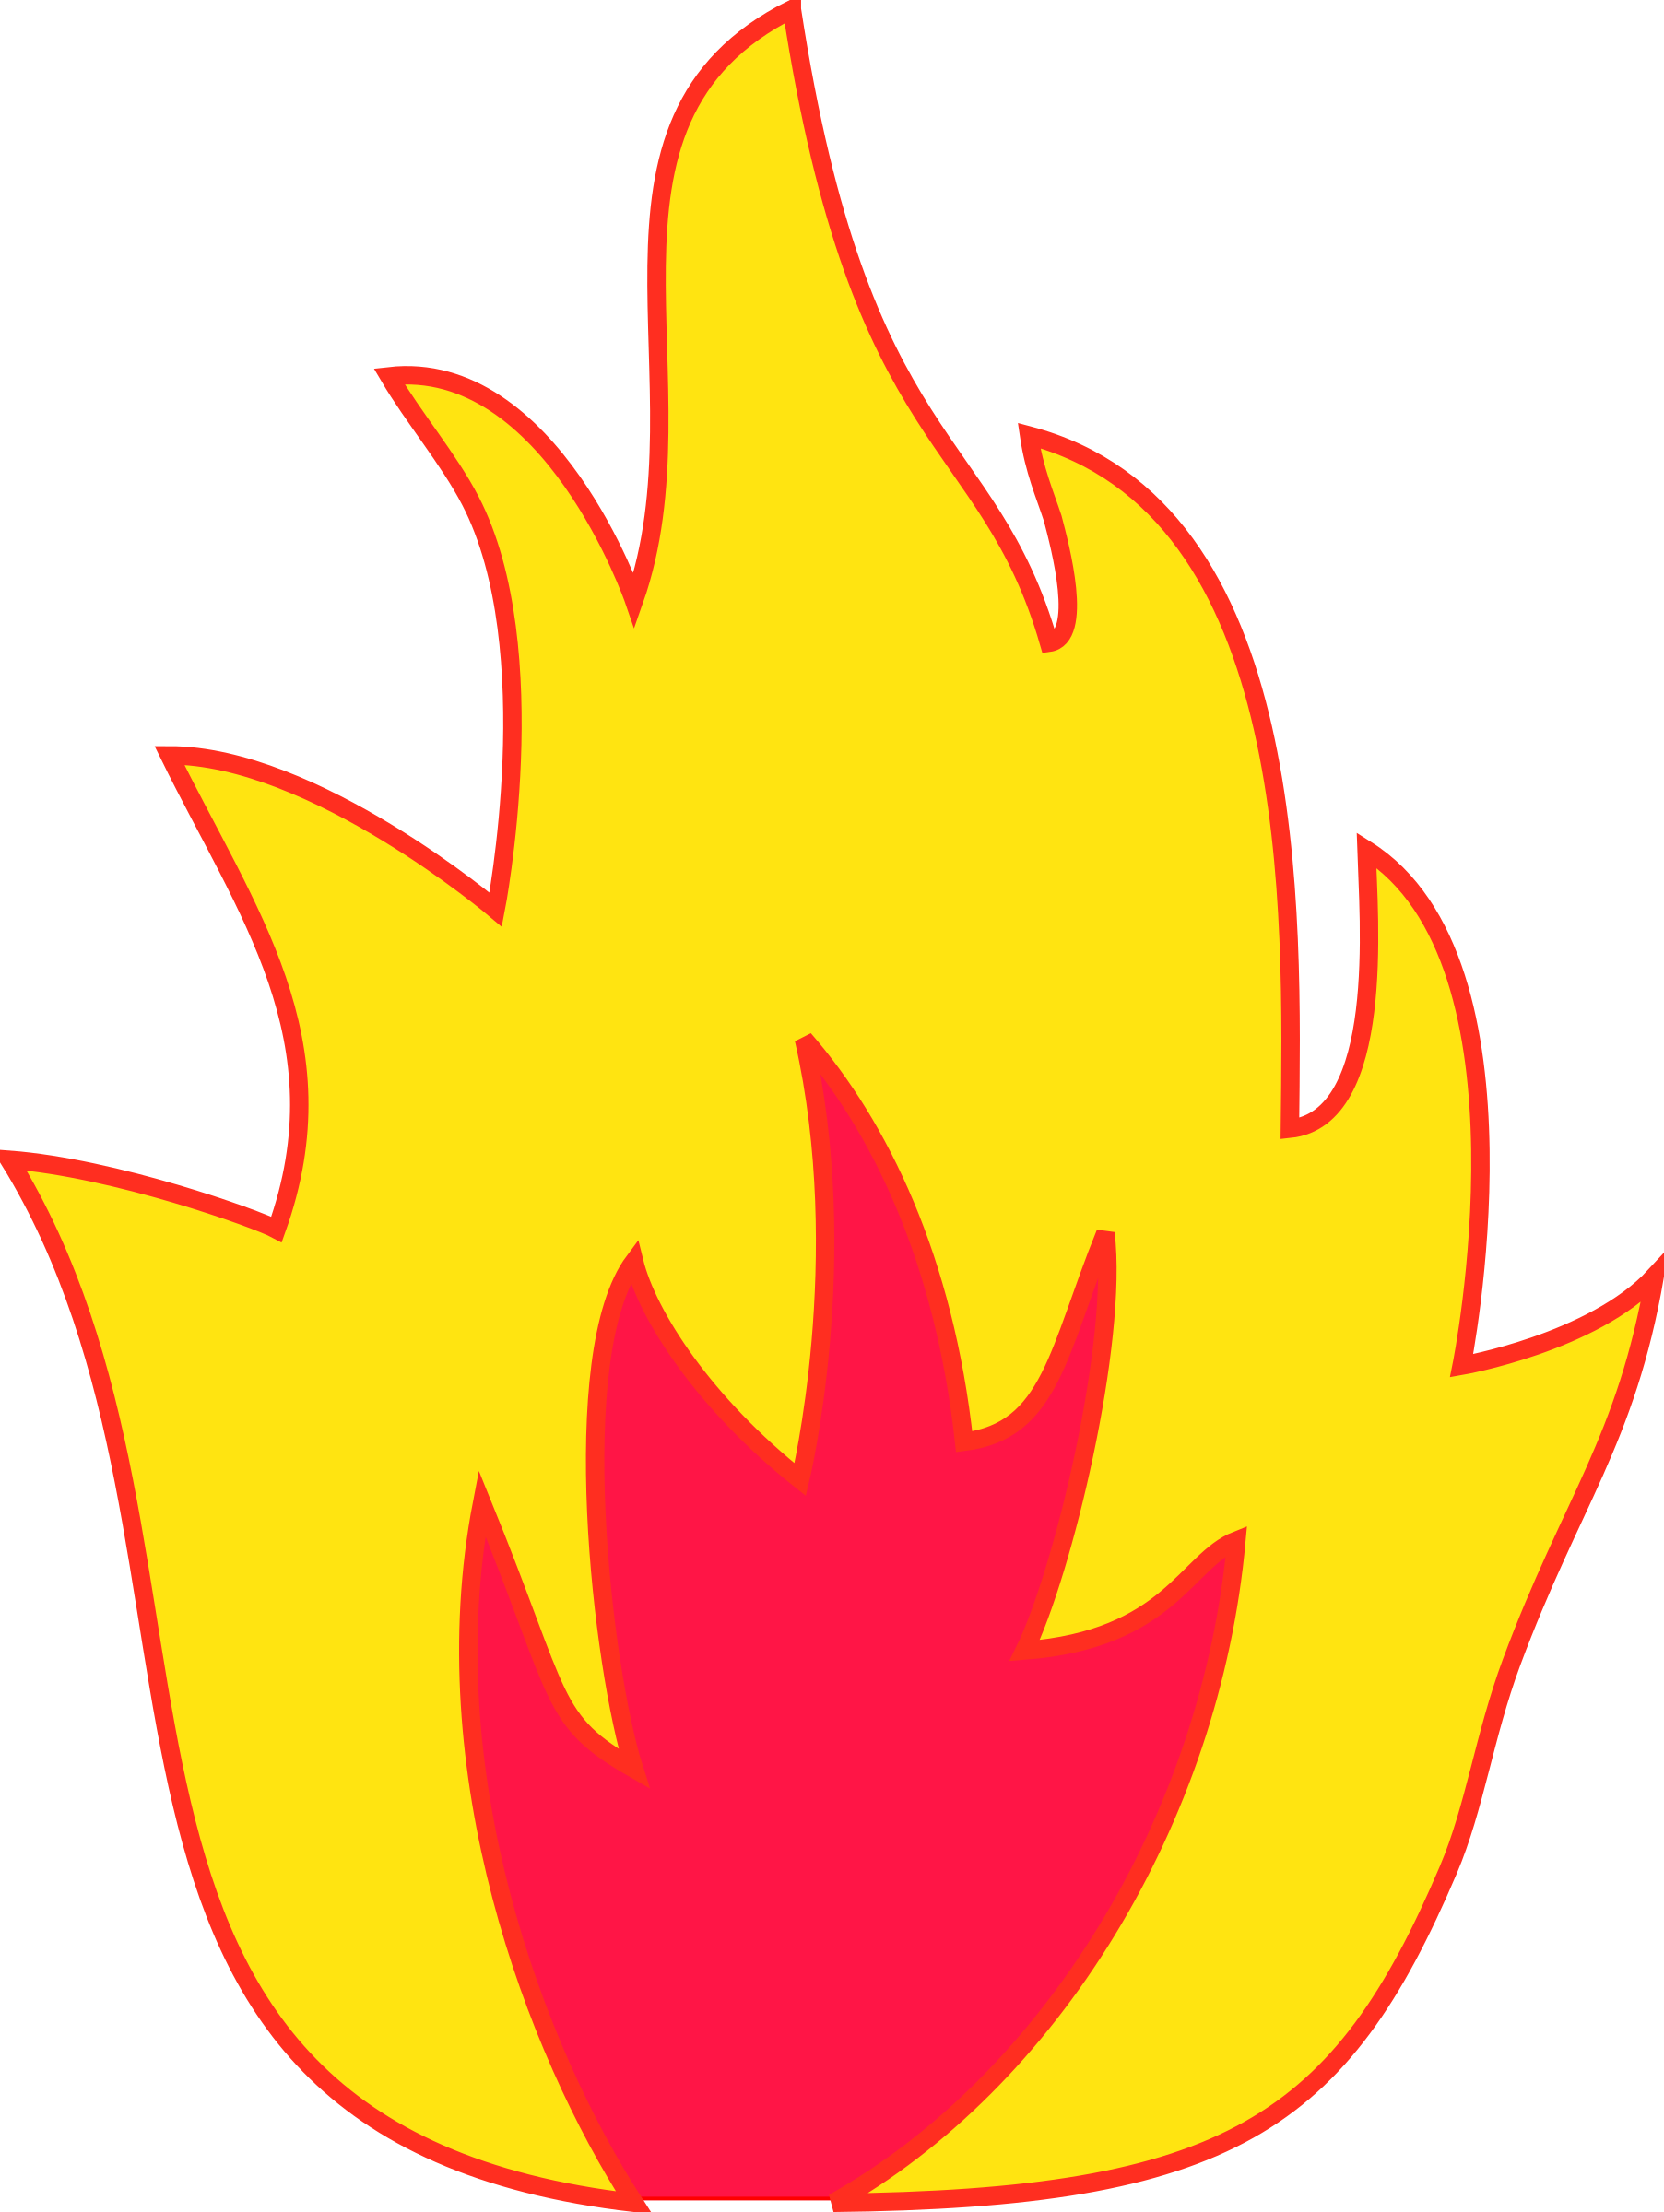 Fire clip pdf. Flames black and